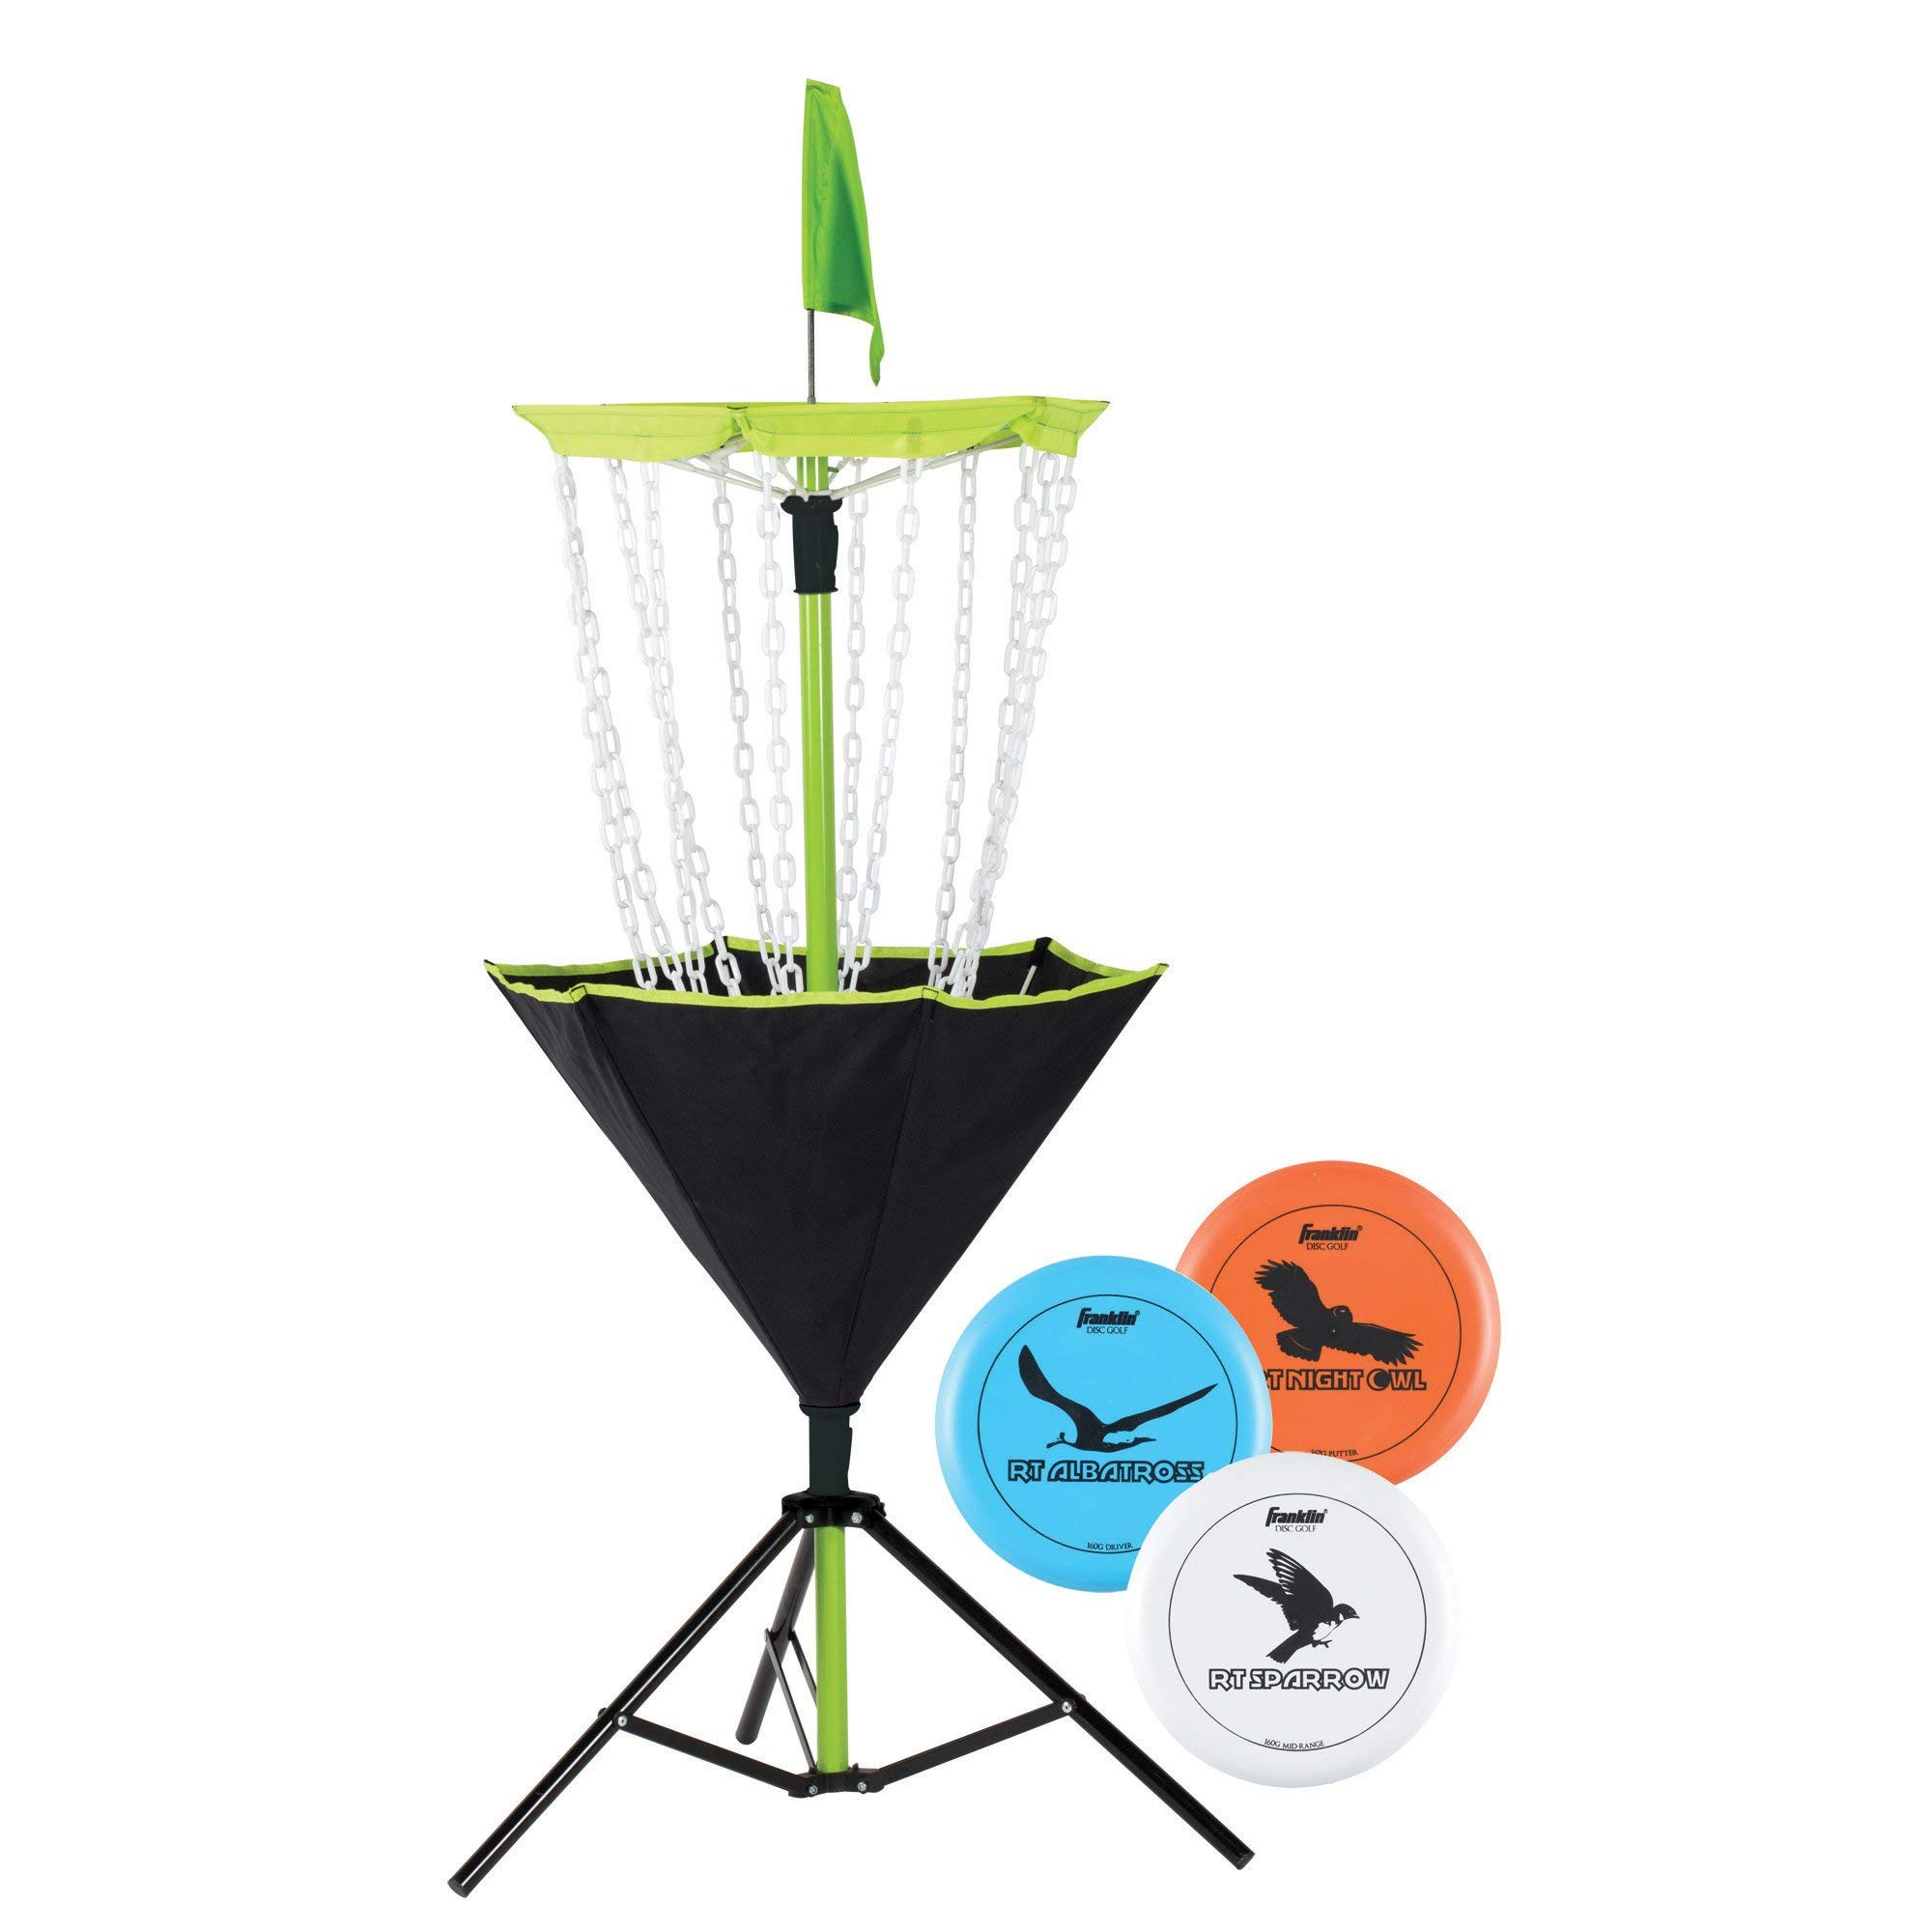 Franklin Sports Disc Golf Set - Disc Golf - Includes Disc Golf Basket, Three Golf Discs and Carrying Bag (Renewed) by Franklin Sports